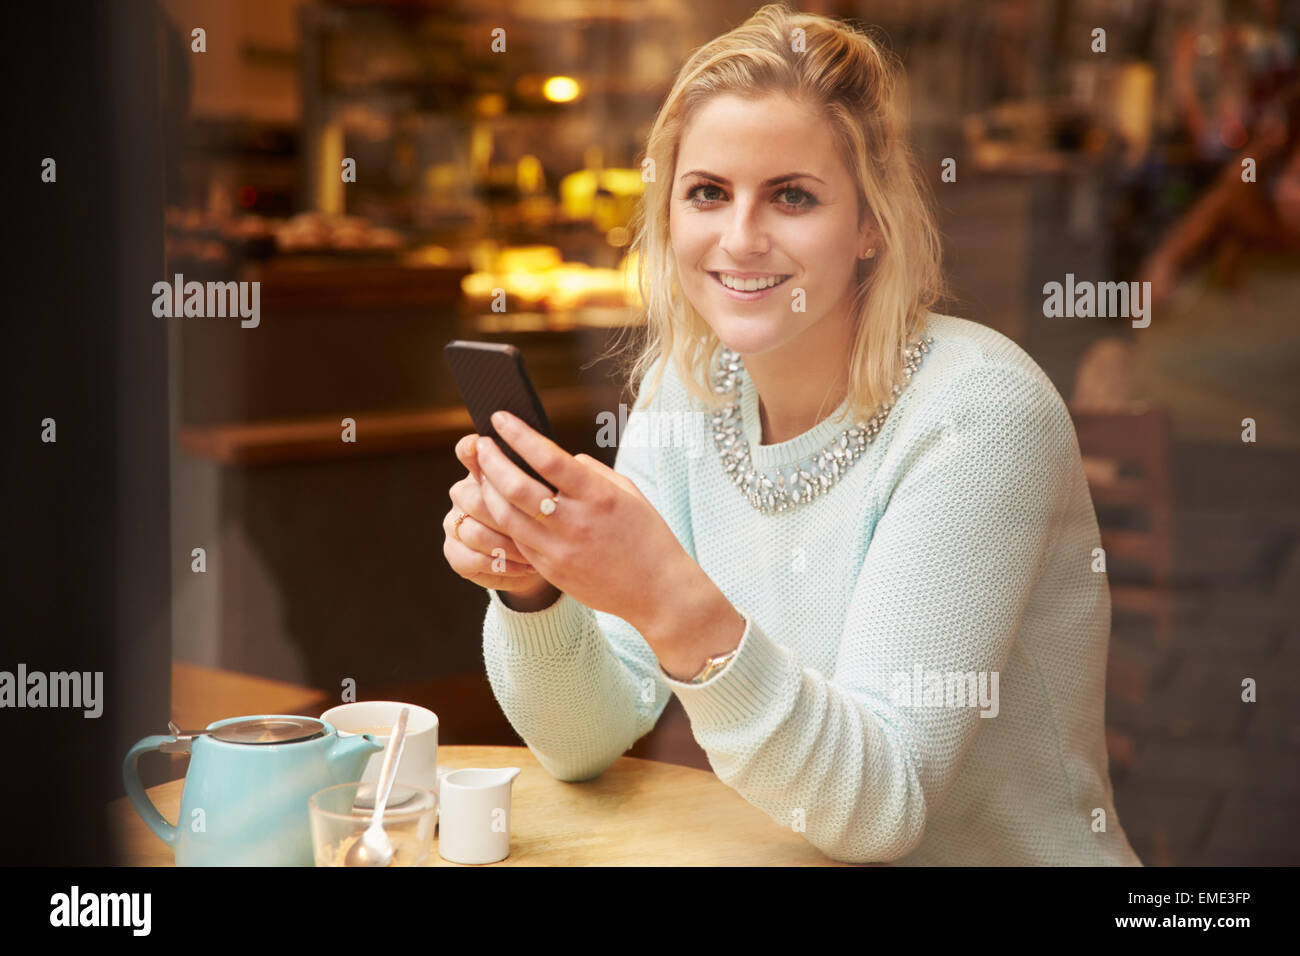 Woman Viewed Through Window Of Caf' Using Mobile Phone - Stock Image